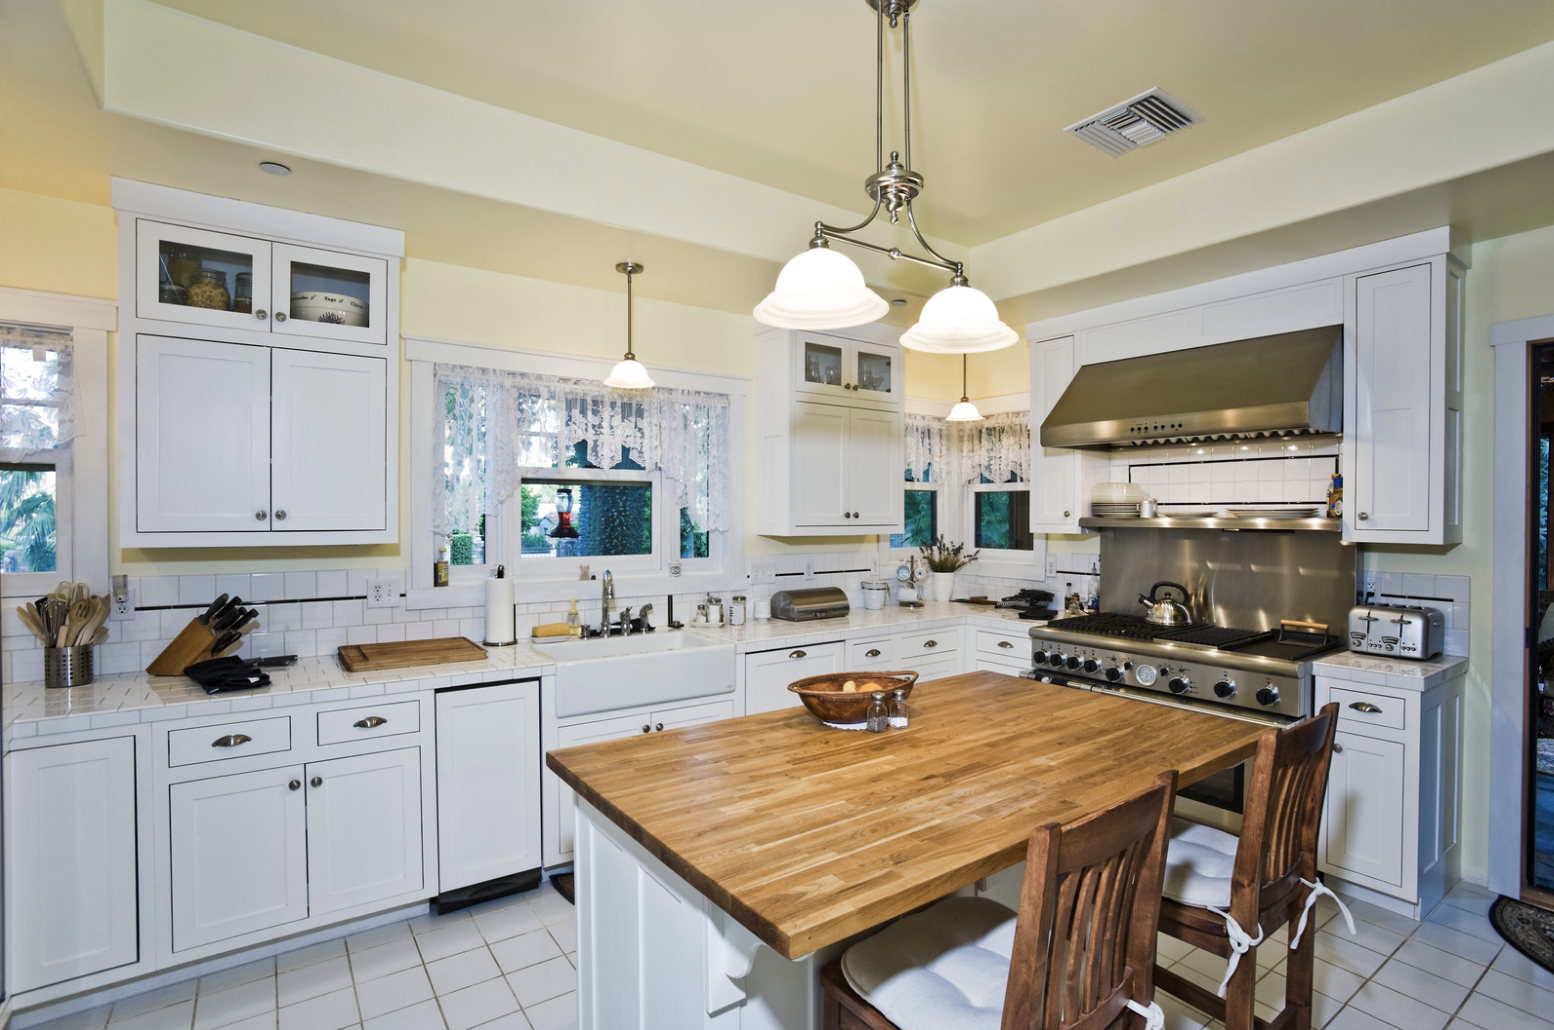 Personalized Decor Options for Your Kitchen